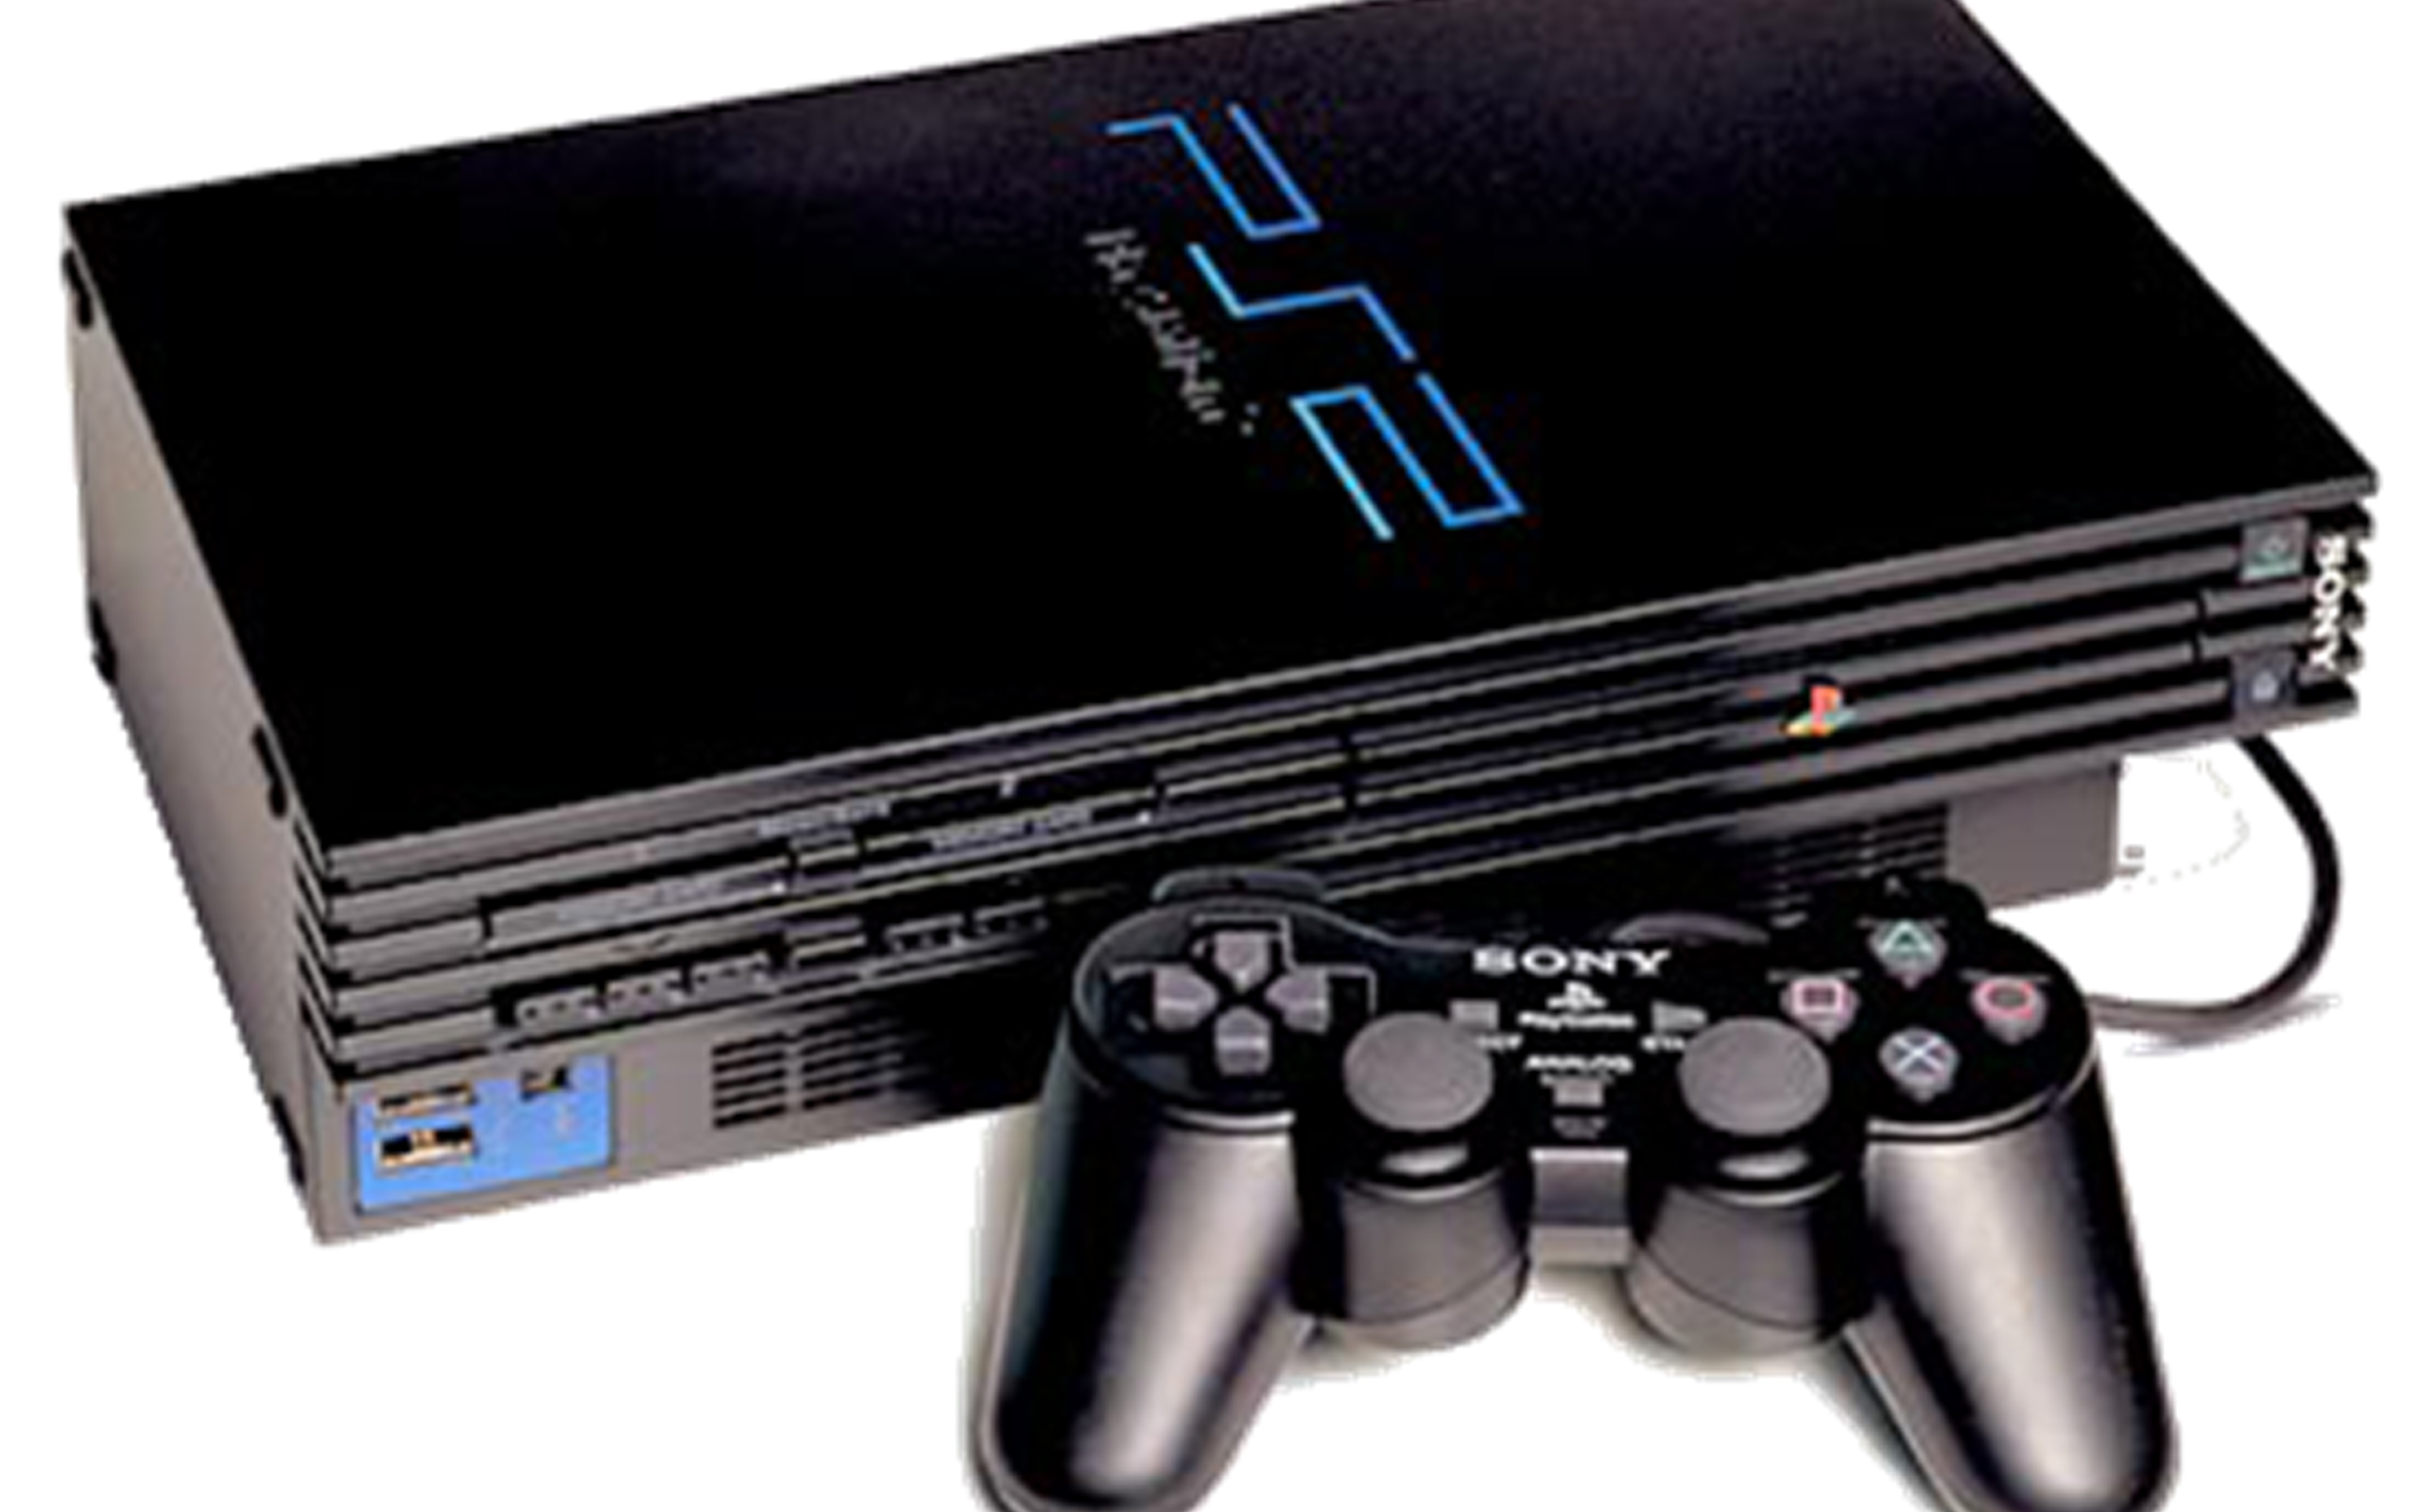 Playstation PS2 console containing Coltan